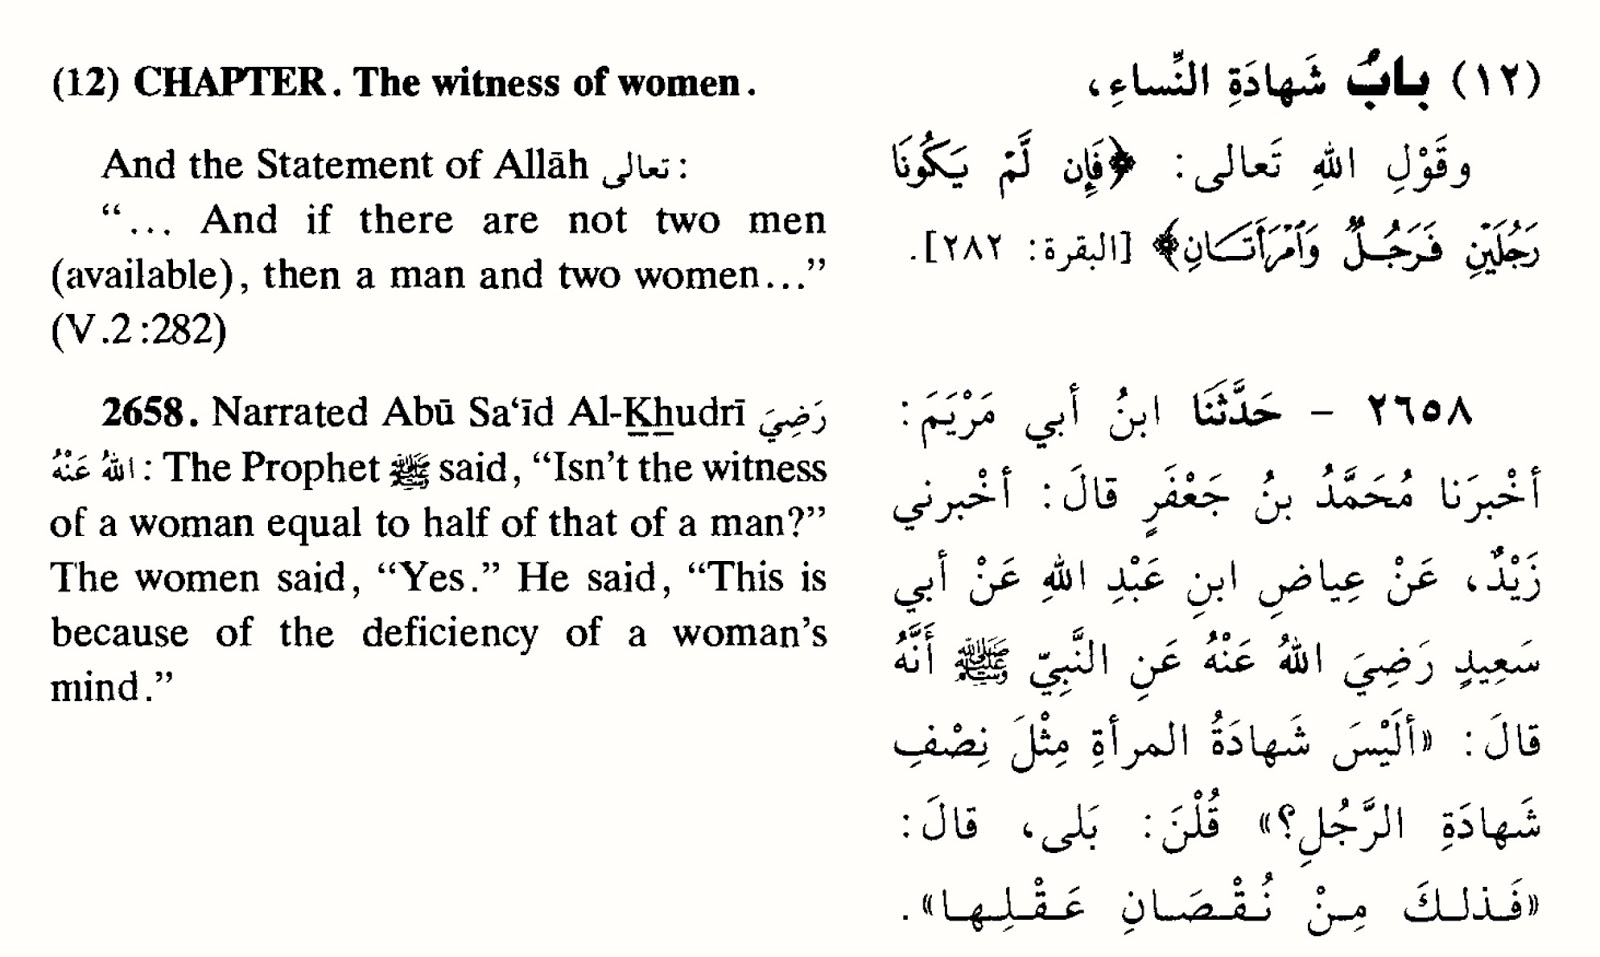 Hadith quotes on homosexuality